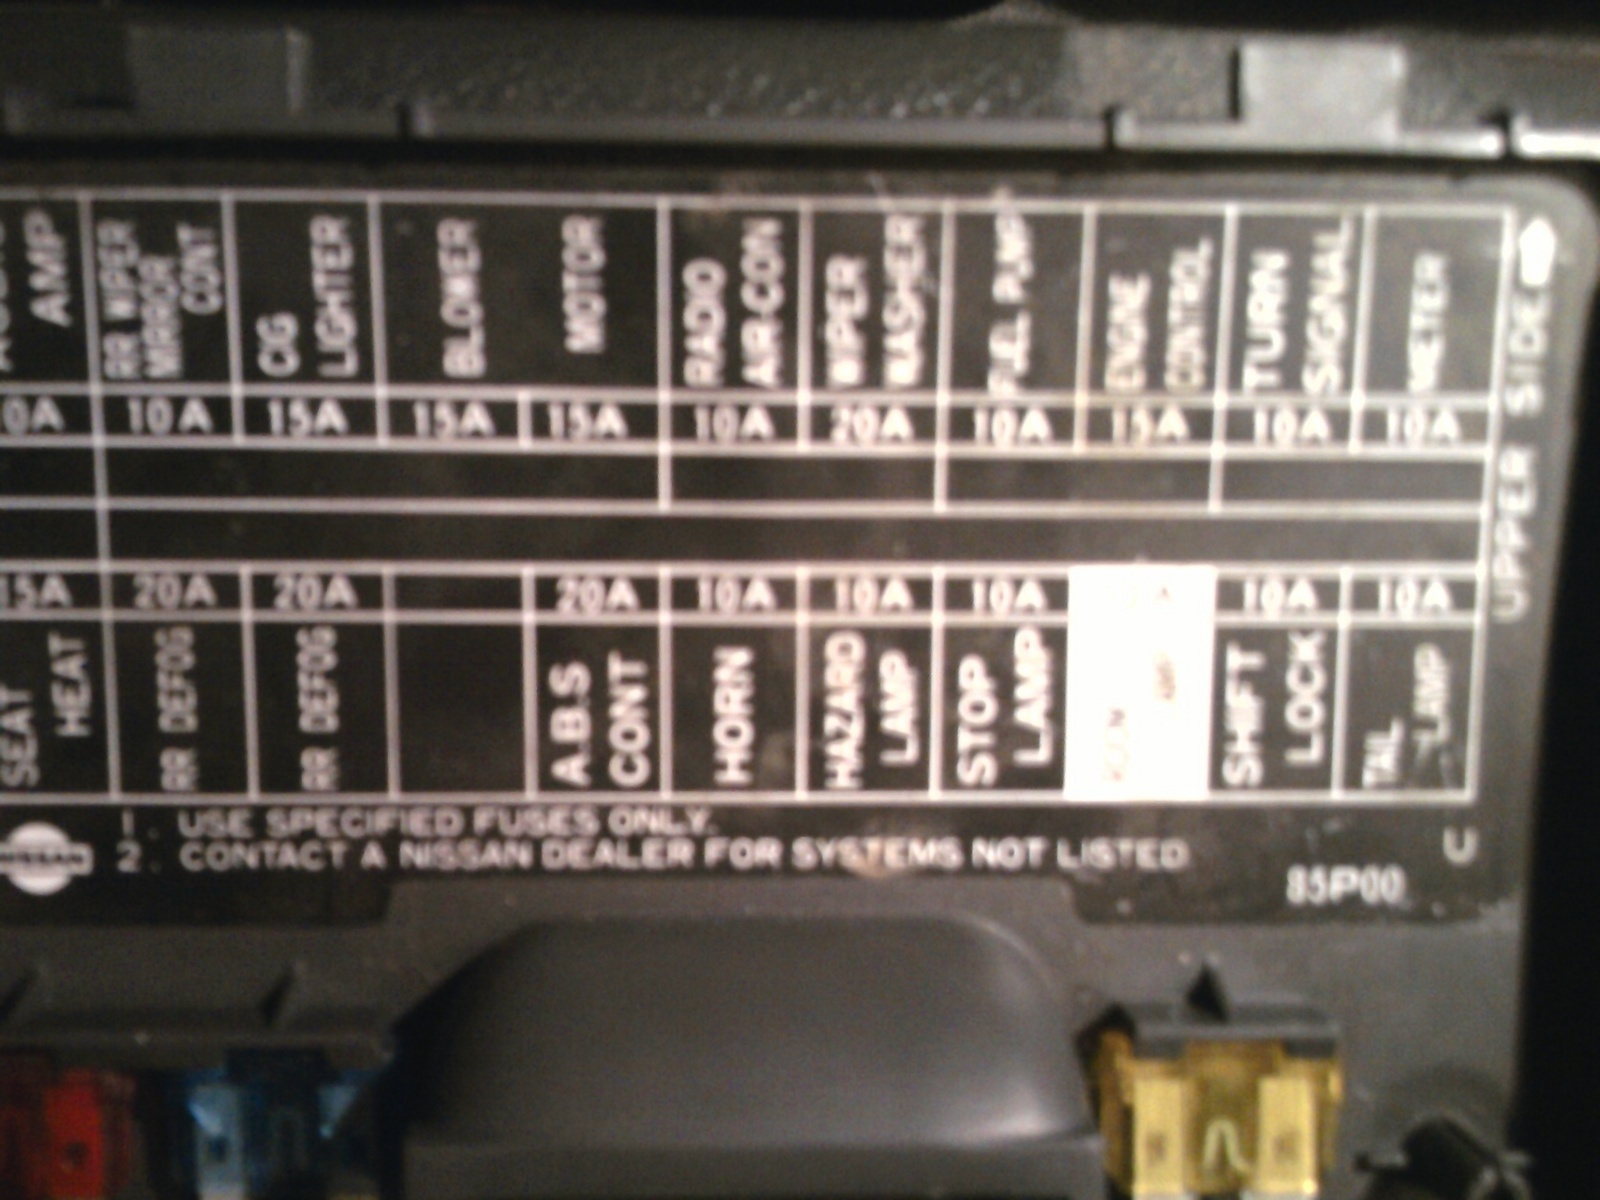 1986 Toyota Pickup Fuse Box Location 36 Wiring Diagram Images 03 Matrix Pic 7501147060191400317 1600x1200 Nissan Questions Where Is The For Hazard Lights